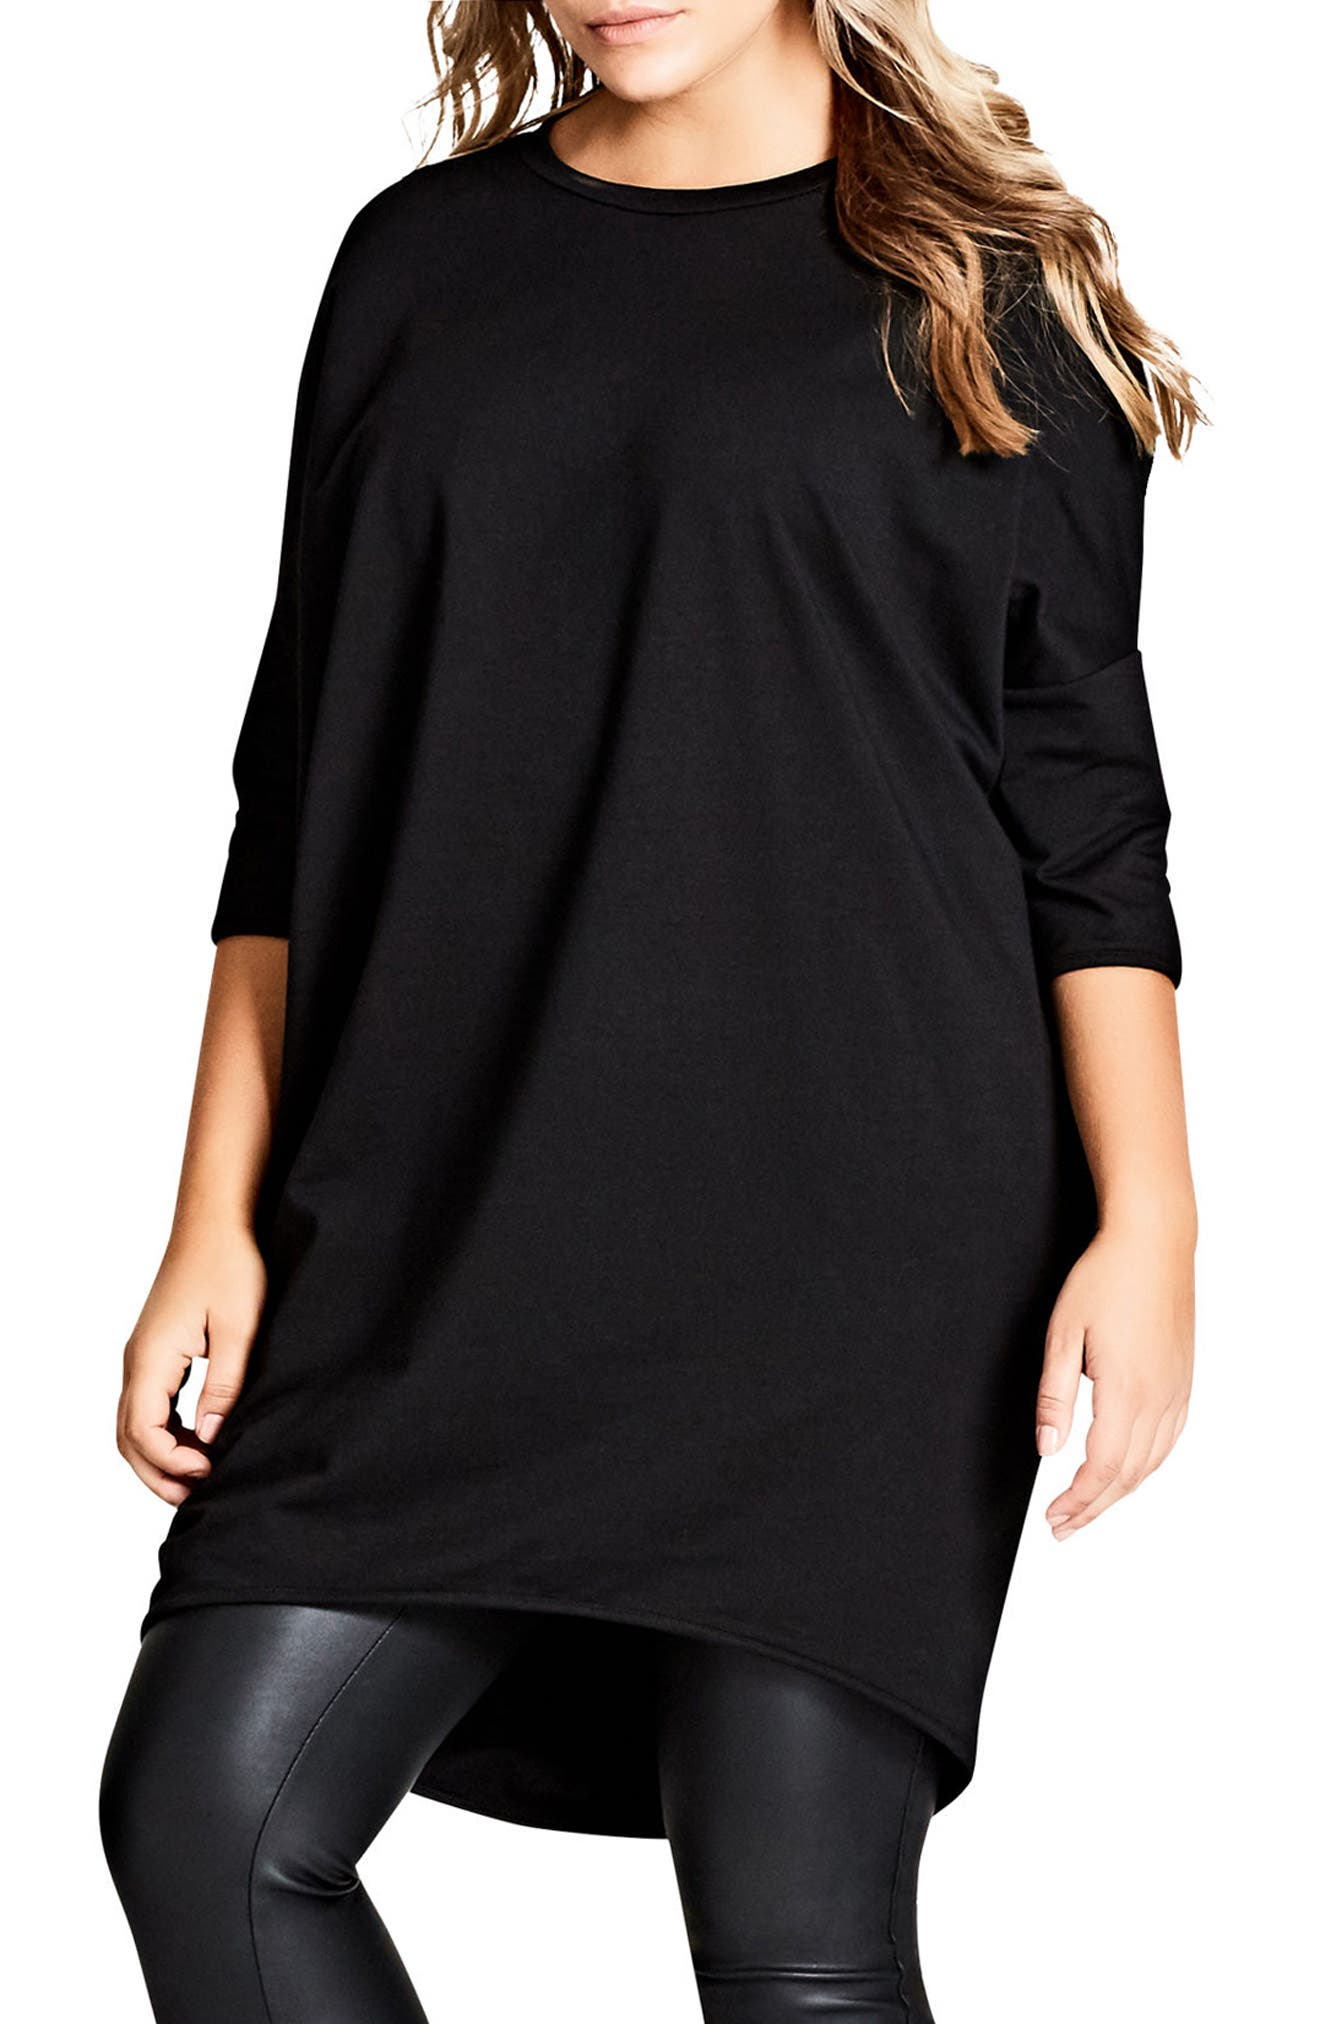 women's plus-size work clothing | nordstrom